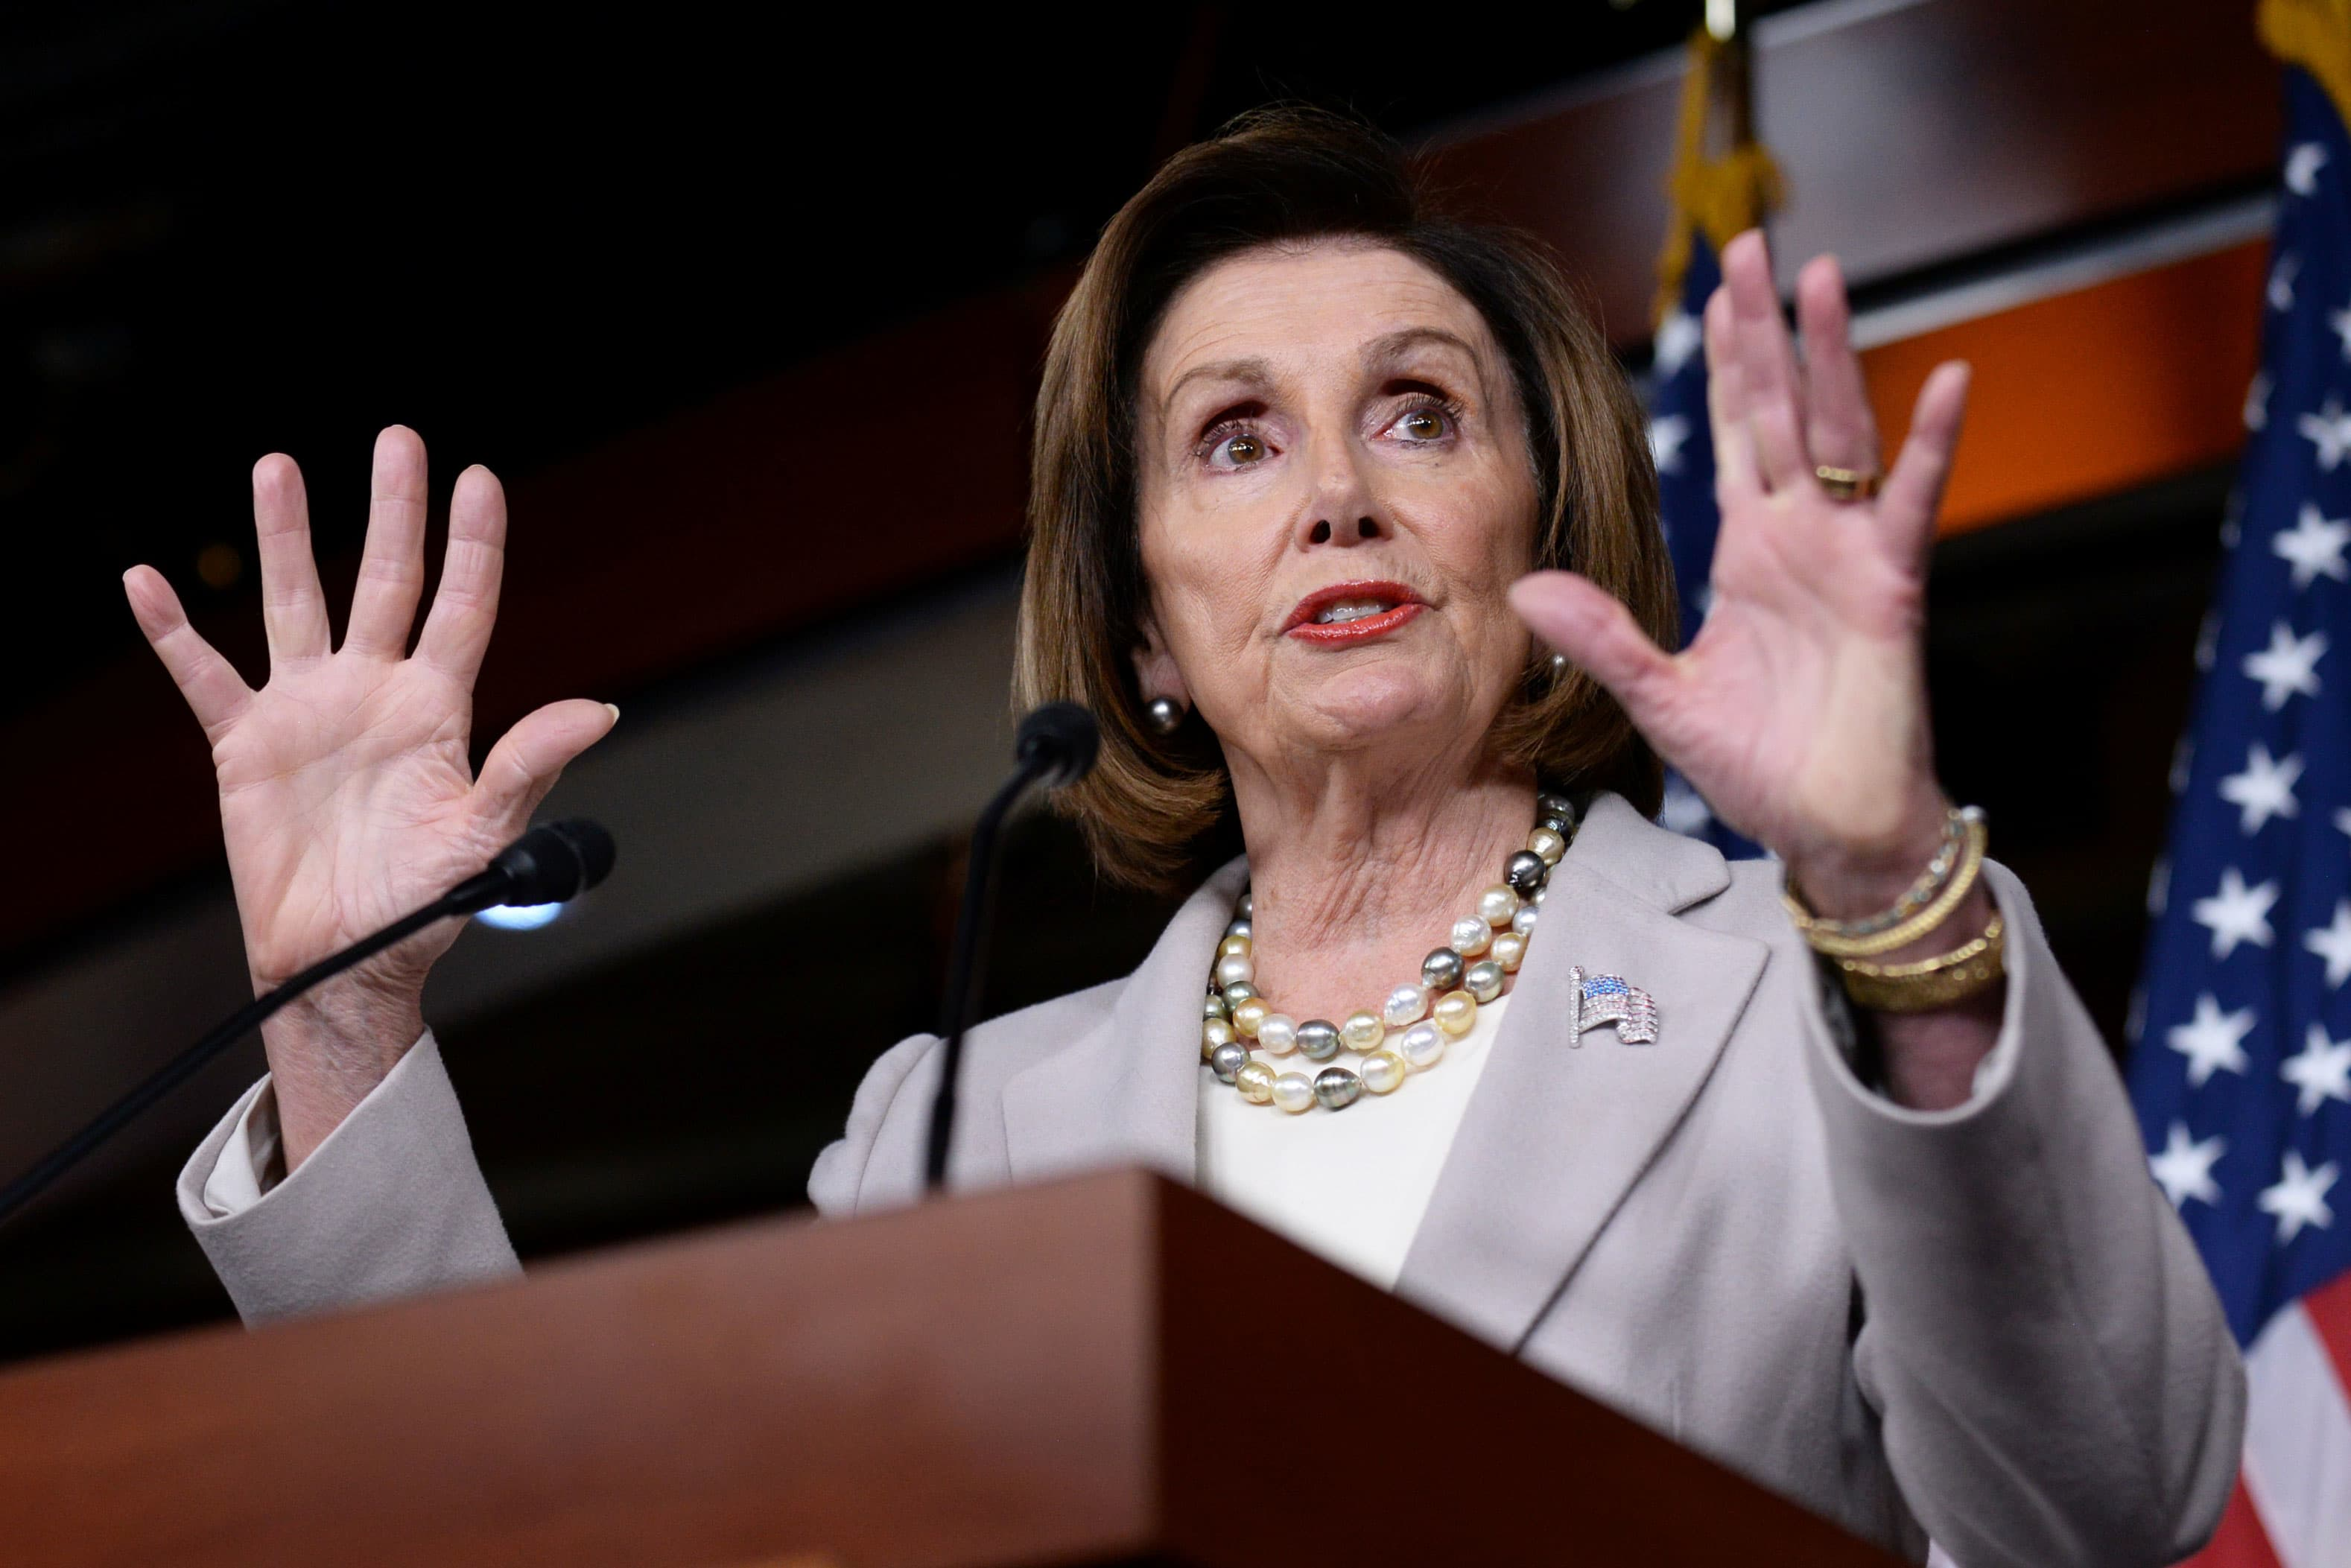 Pelosi says Trump's actions are worse than Richard Nixon's, suggests he should resign